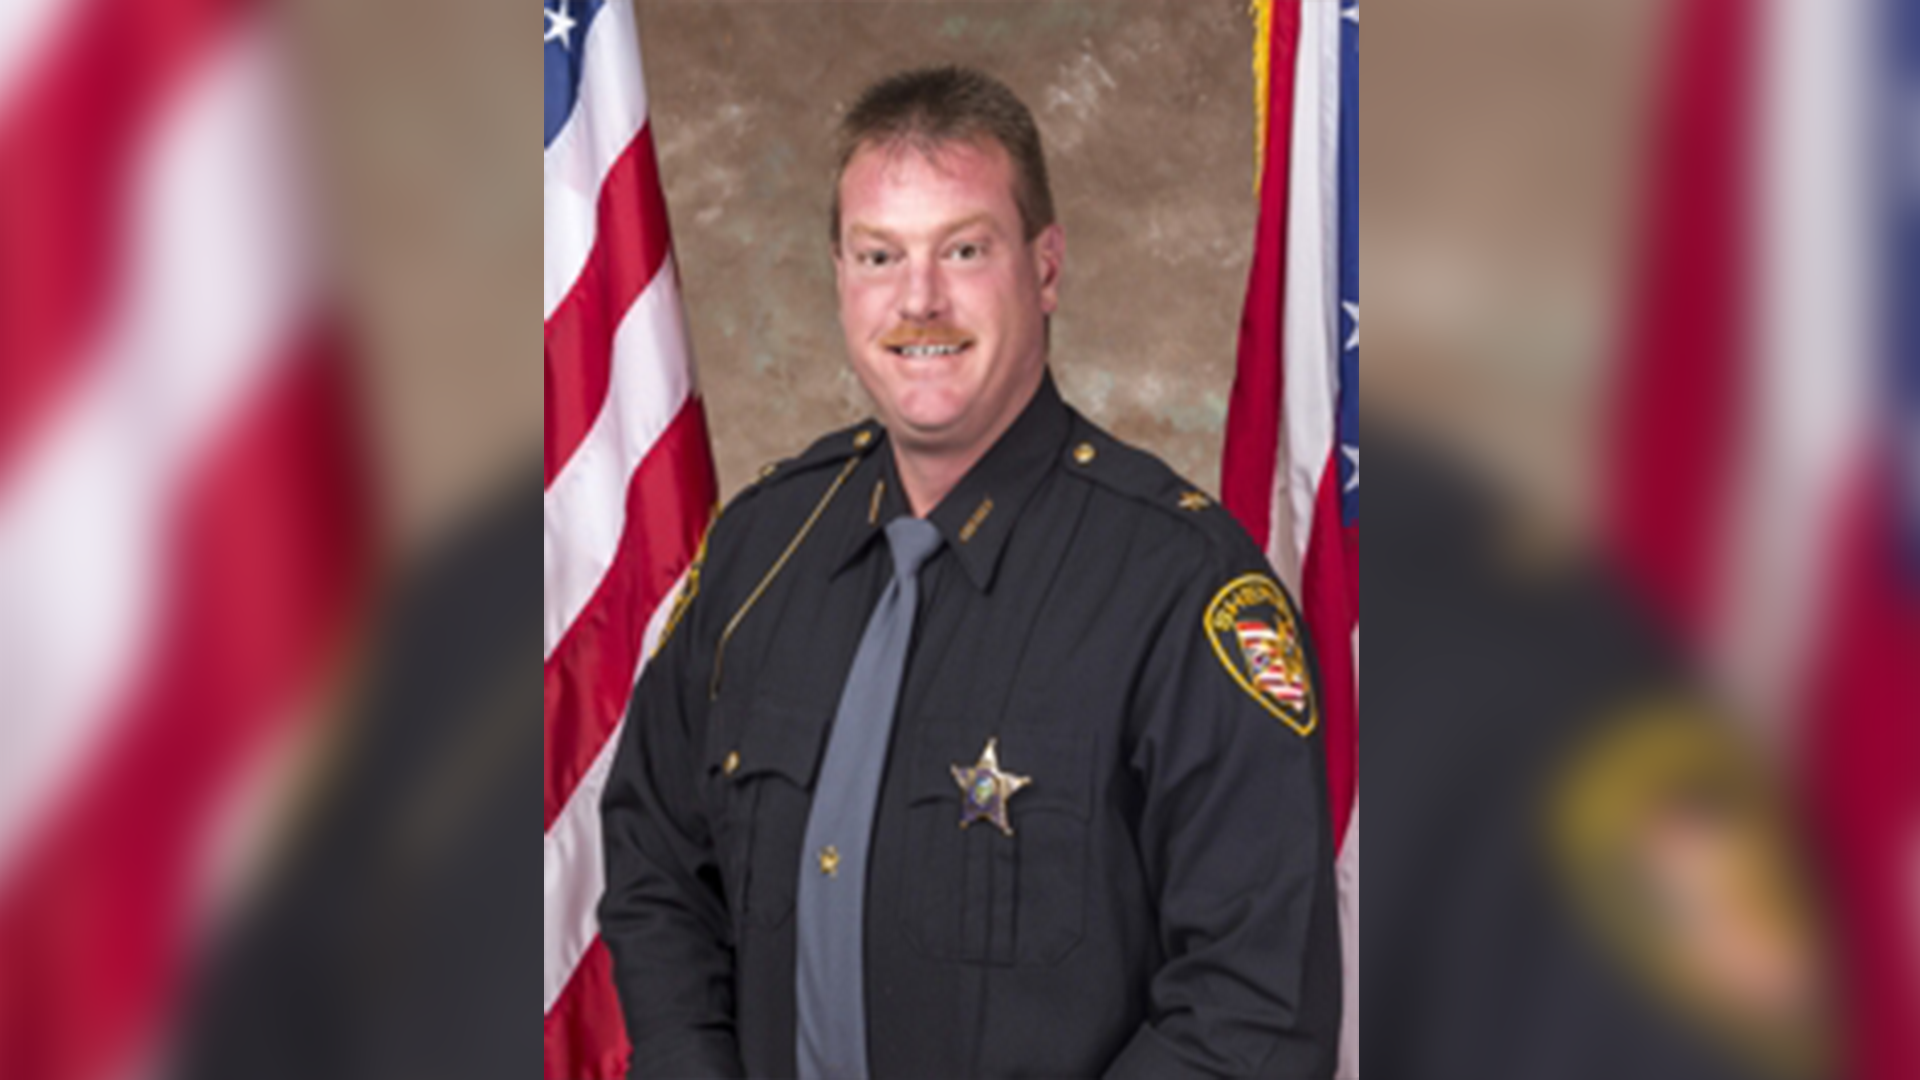 Pike County Sheriff Charles Reader indicted on theft in office